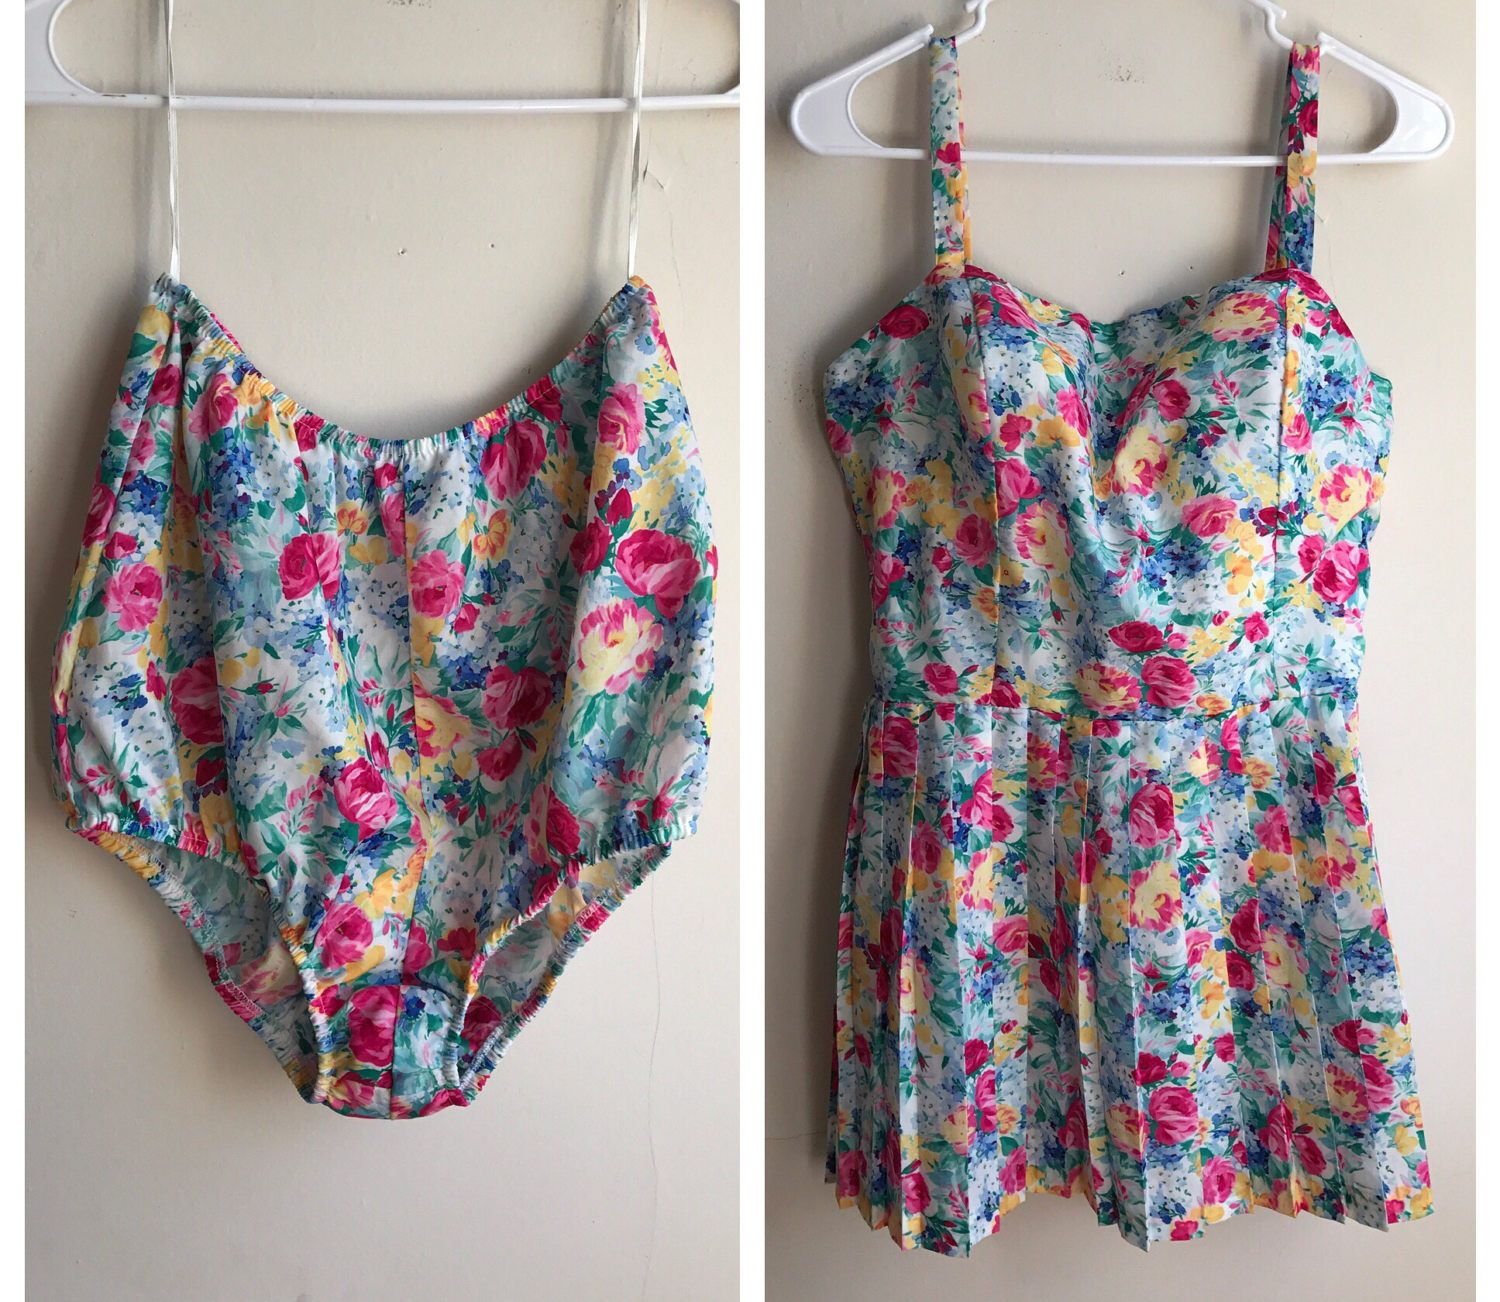 Vintage 60s Swimsuit | High Waisted Vintage Bathing Suit | Floral Pattern Boho Swimsuit | Pleated Skirt Bathing Suit | Peplum Swimwear by VintageBobbieMaude on Etsy https://www.etsy.com/listing/506971896/vintage-60s-swimsuit-high-waisted